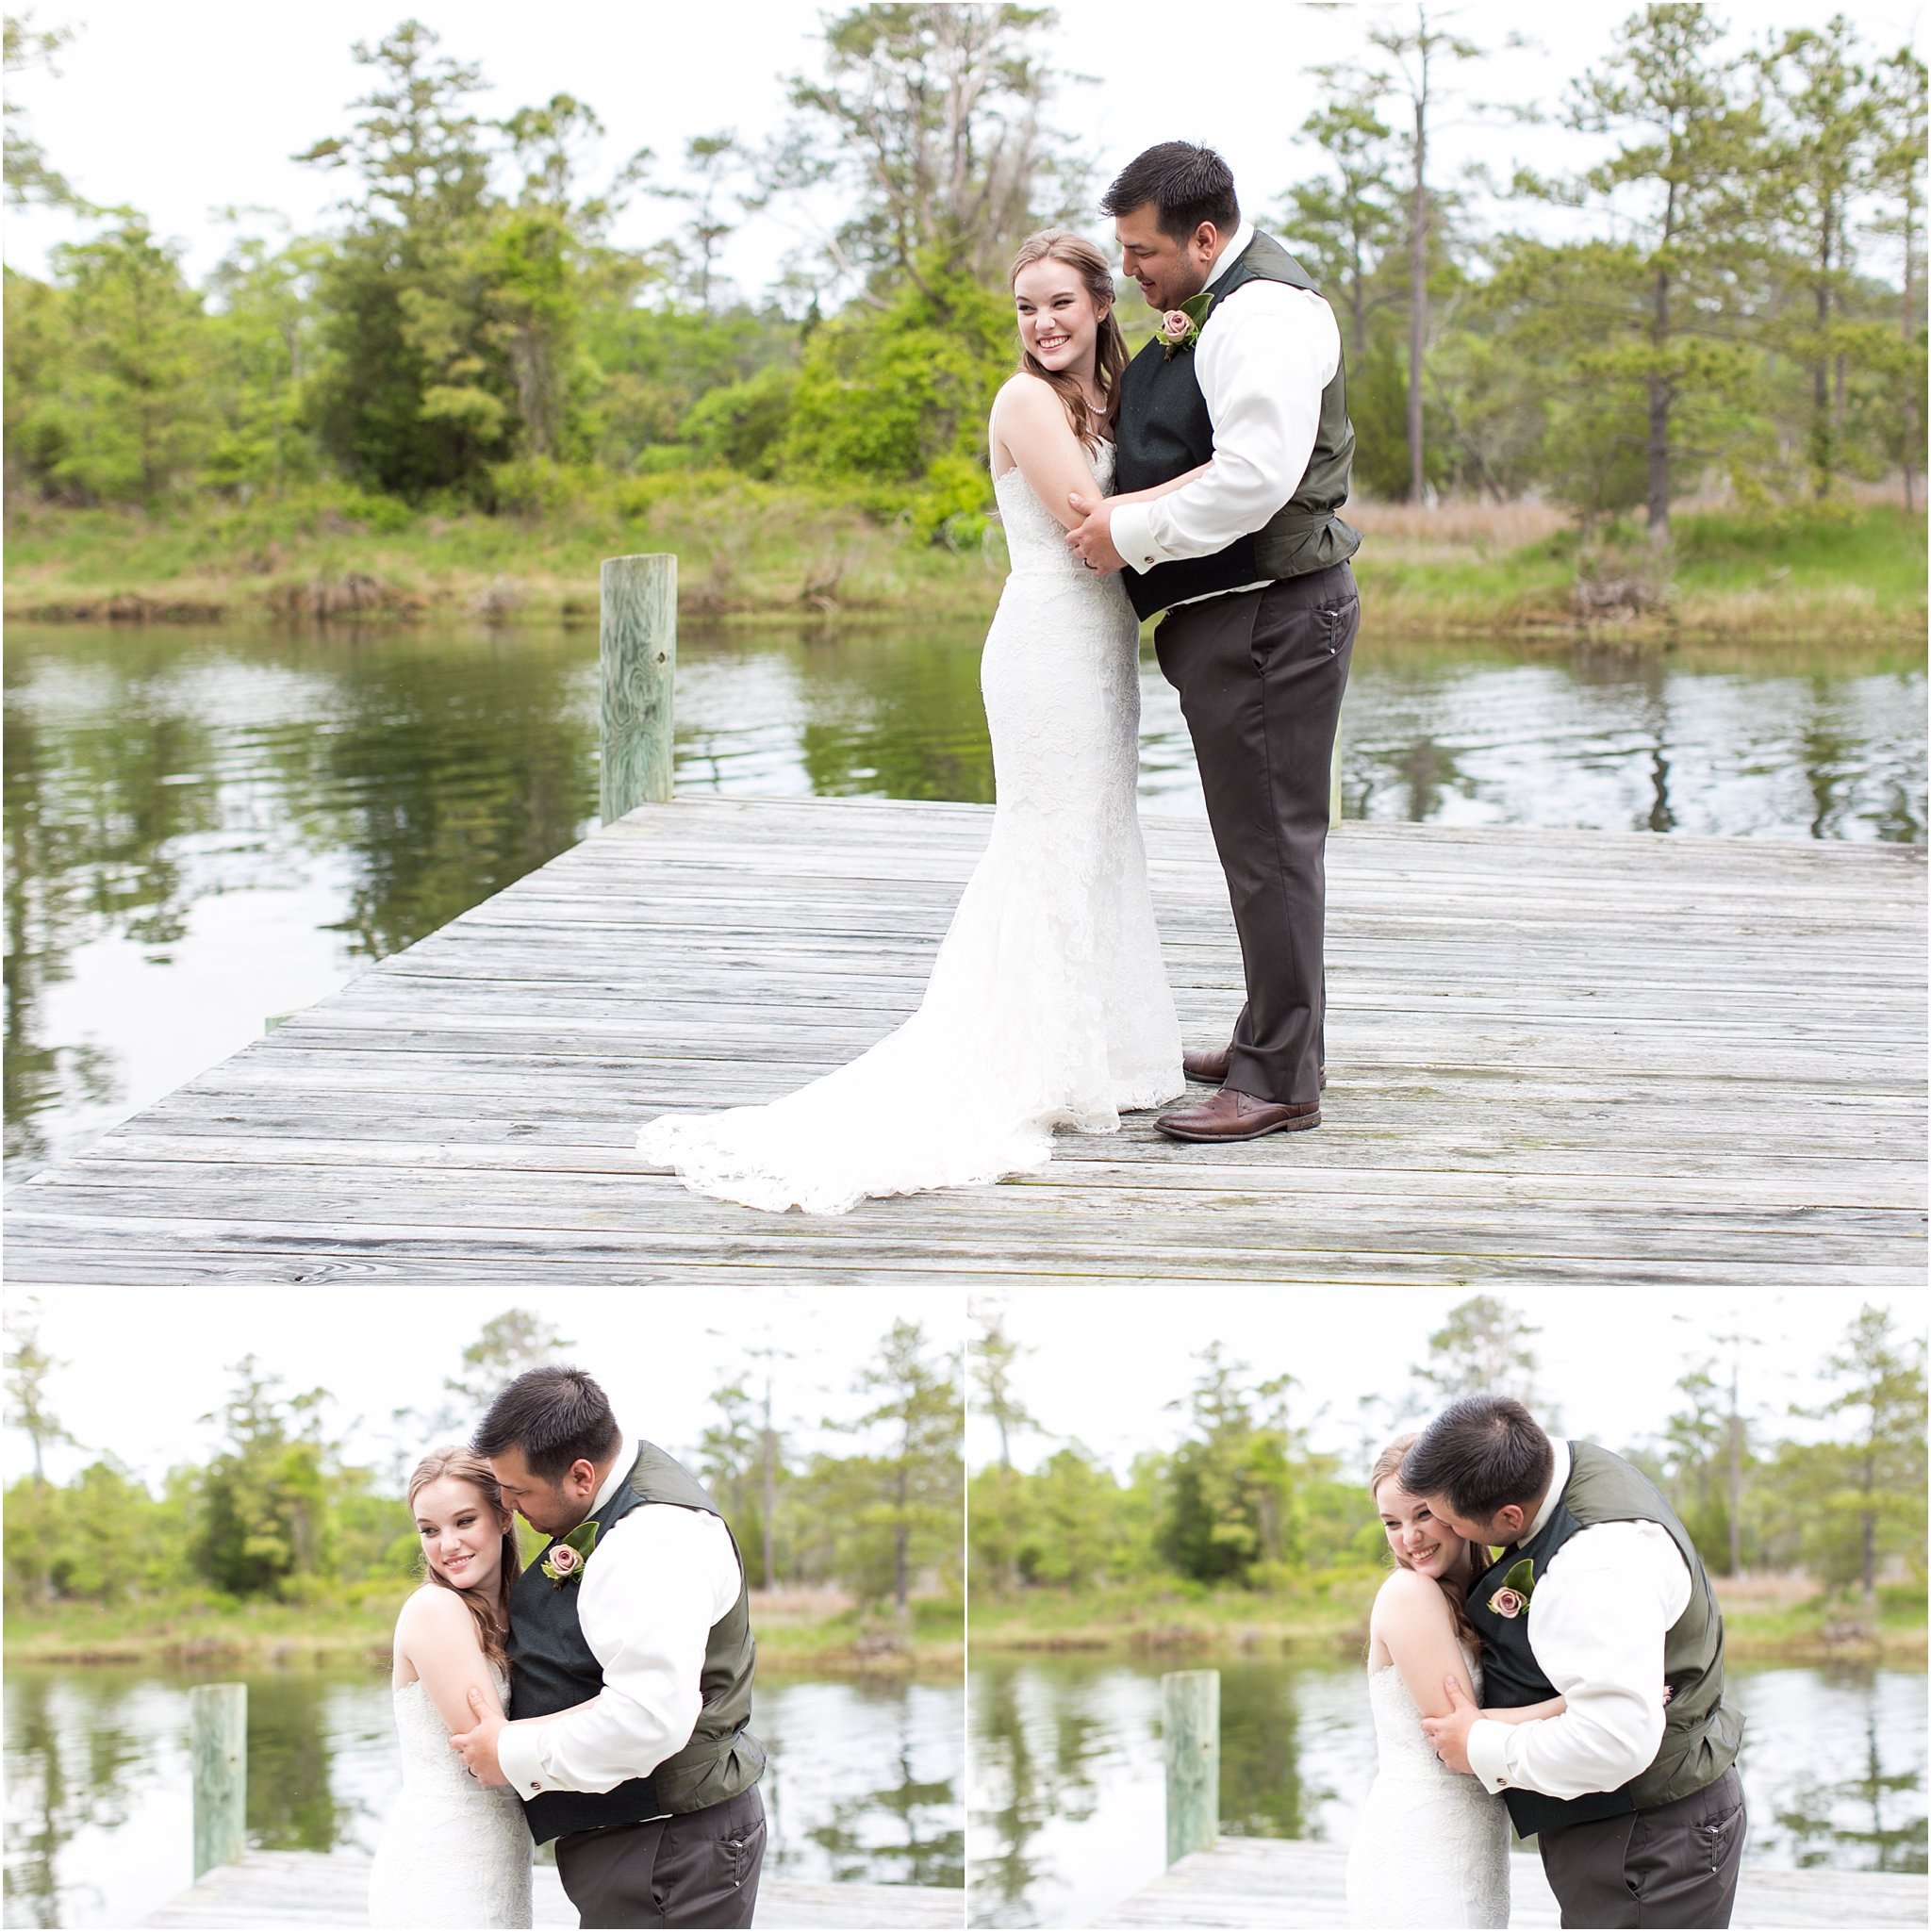 jessica_ryan_photography_virginia_virginiabeachwedding_bayislandvirginiabeach_backyardwedding_waterfrontwedding_intimatewedding_vintagewedding_1568